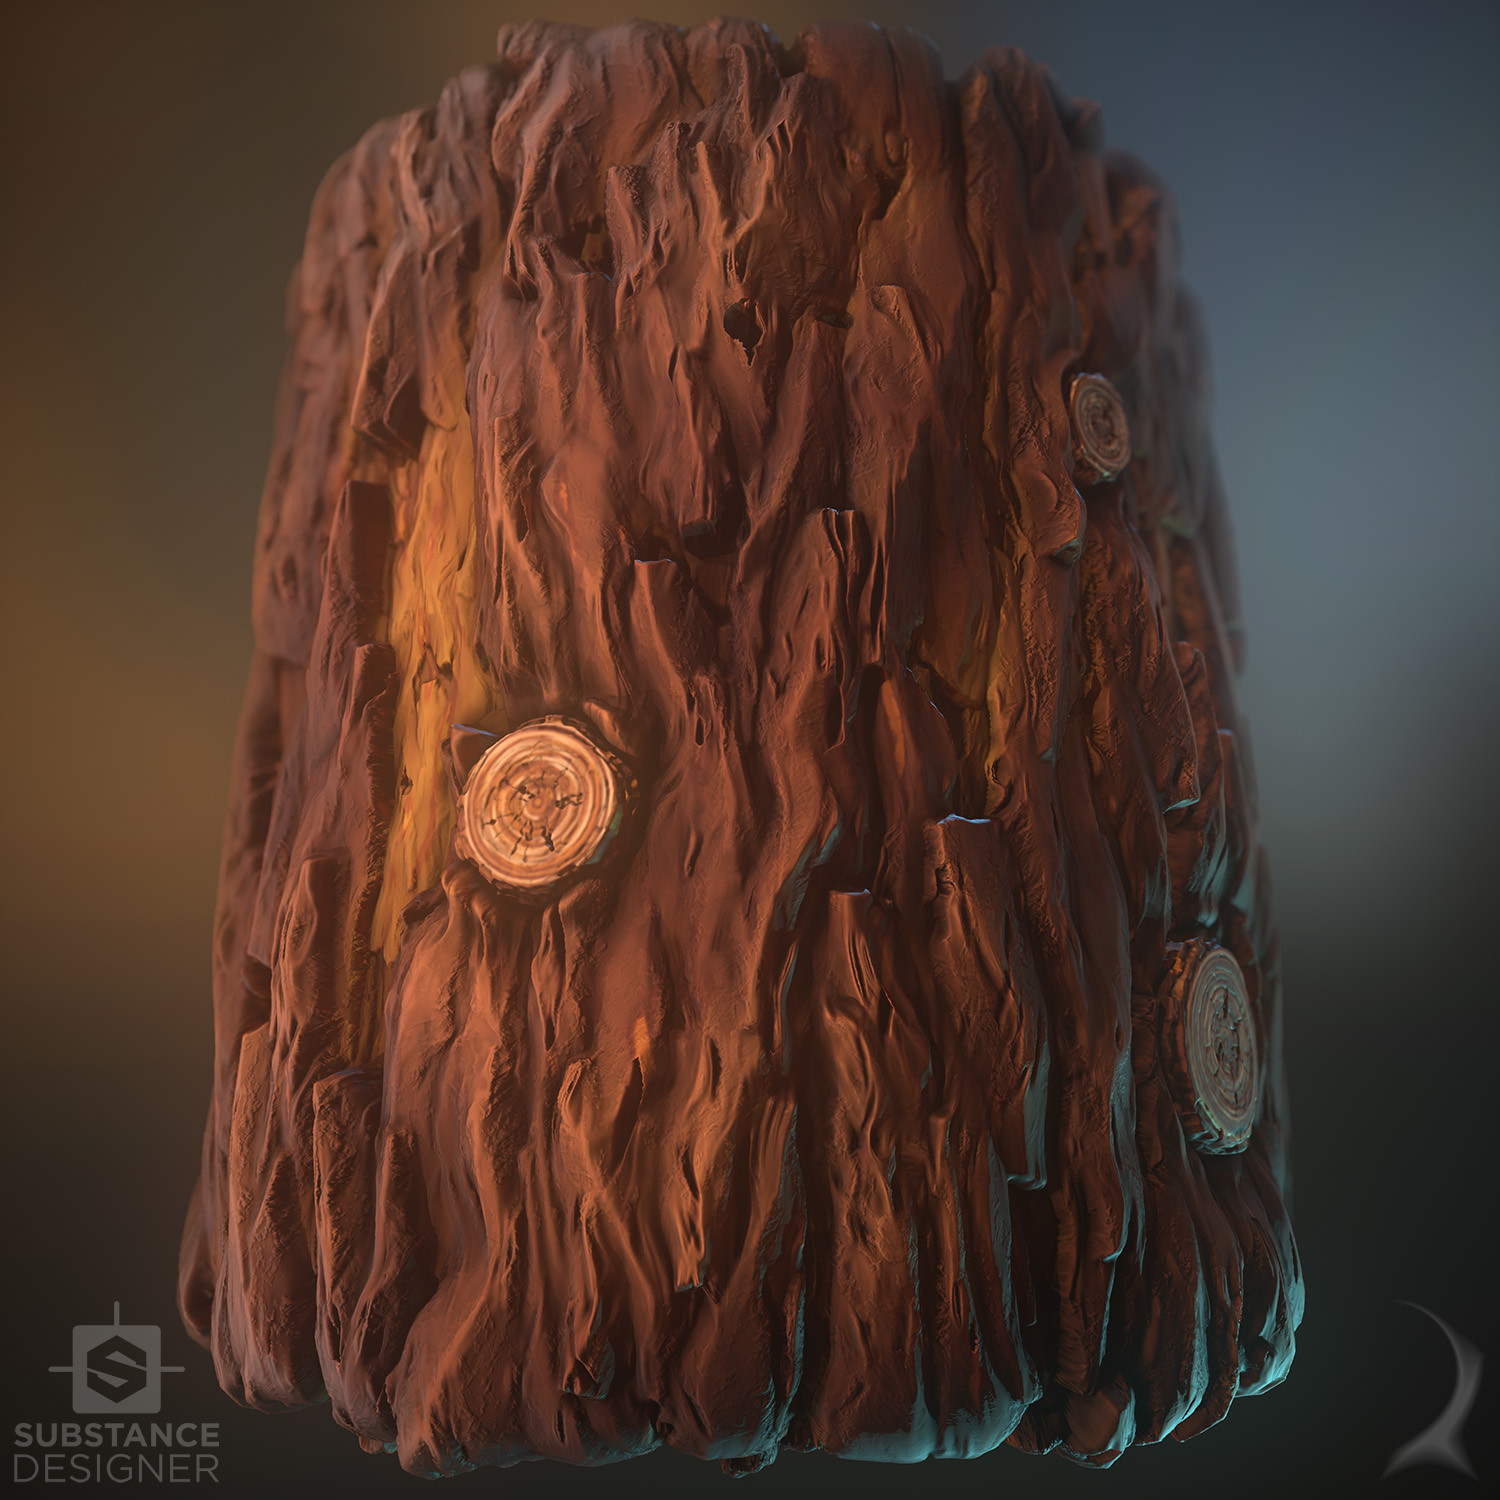 ArtStation - Stylized series - 3 materials (bark, grass